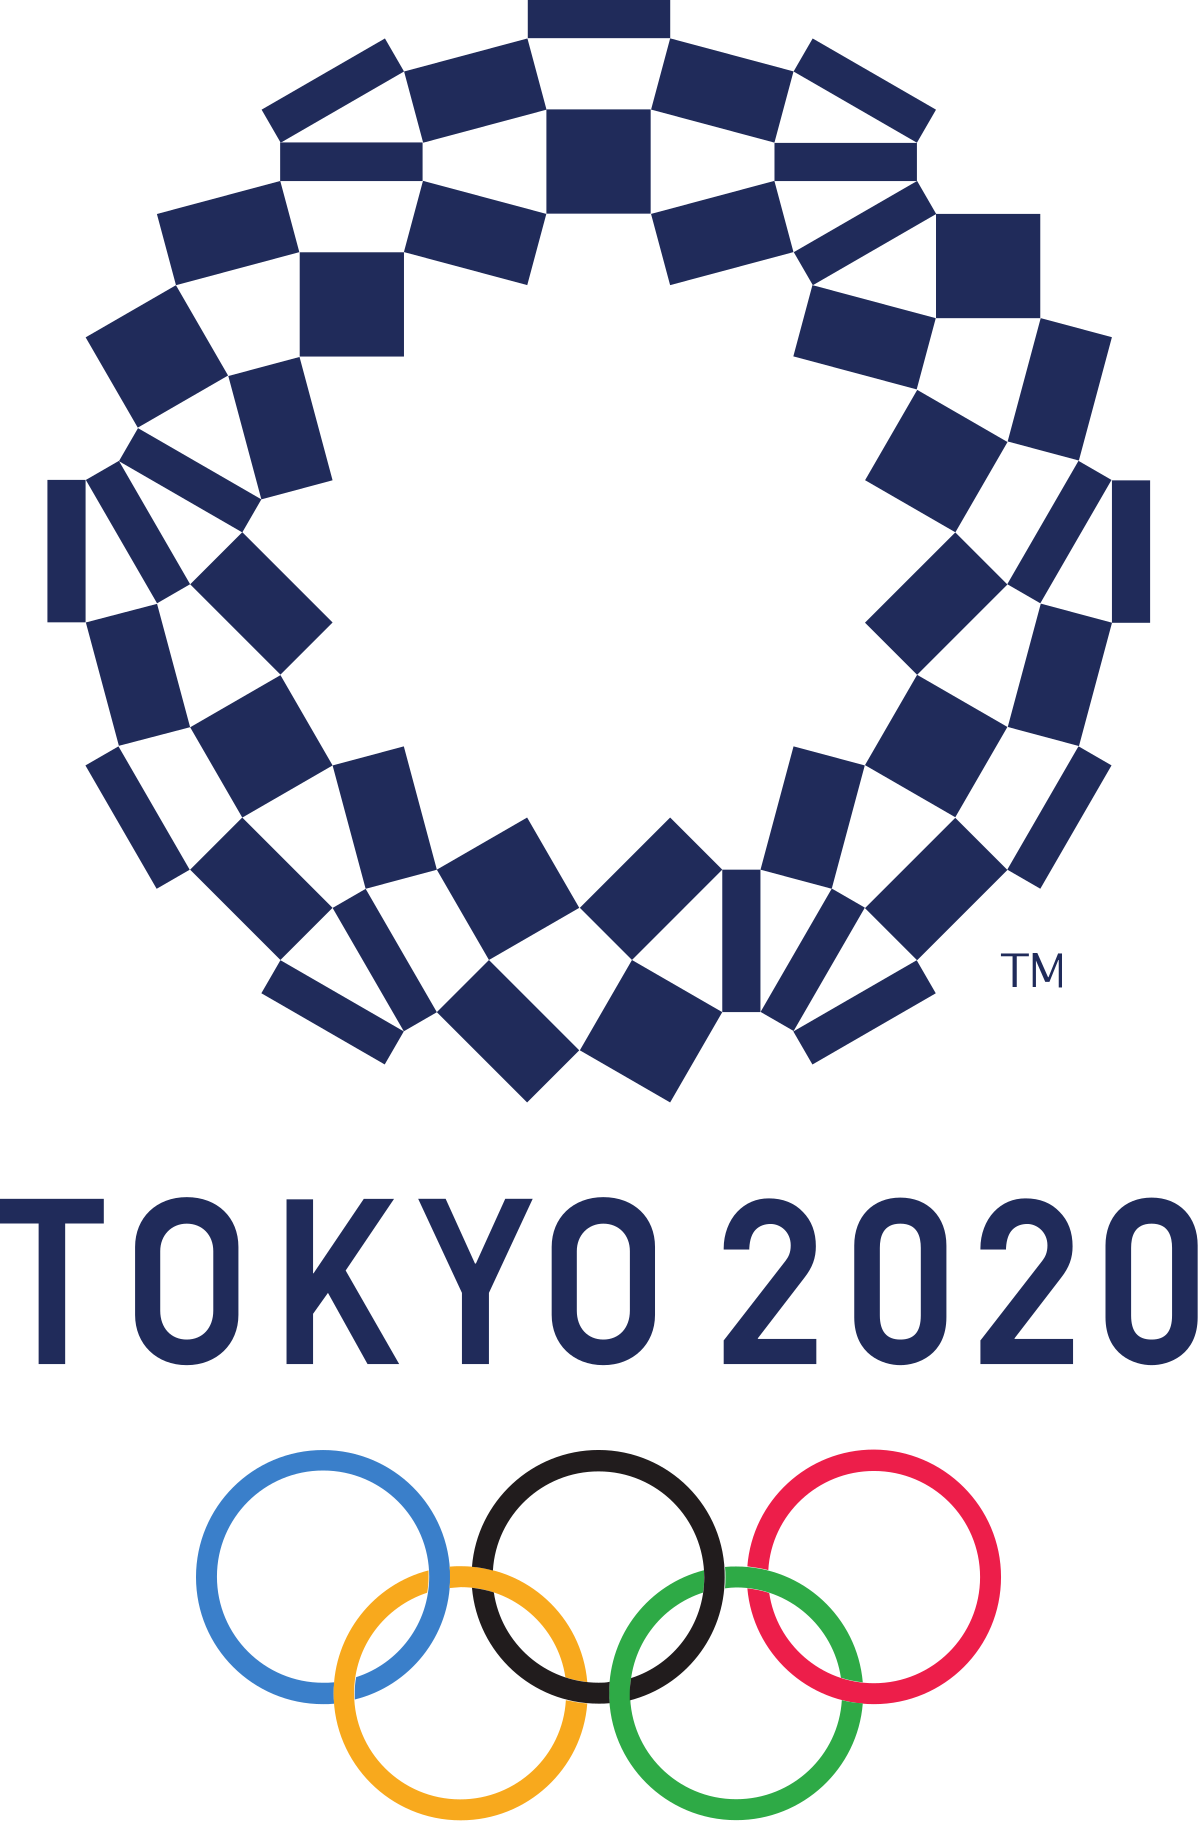 Tokyo Olympic Games Source: tokyo2020.org